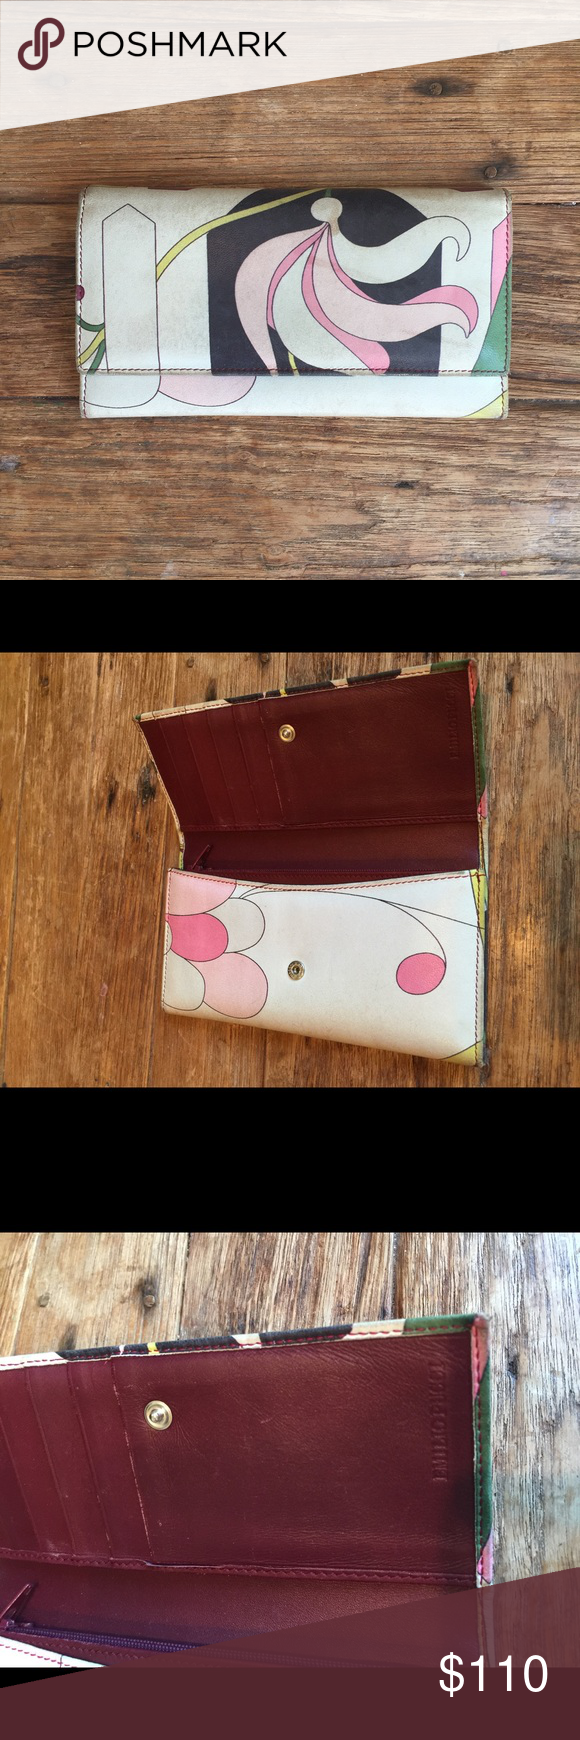 AUTHENTIC EMILIO PUCCI WALLET Pucci printed leather wallet with burgundy leather inside. Room for credit cards, lots of storage and zip pocket for coins. Emilio Pucci Bags Wallets